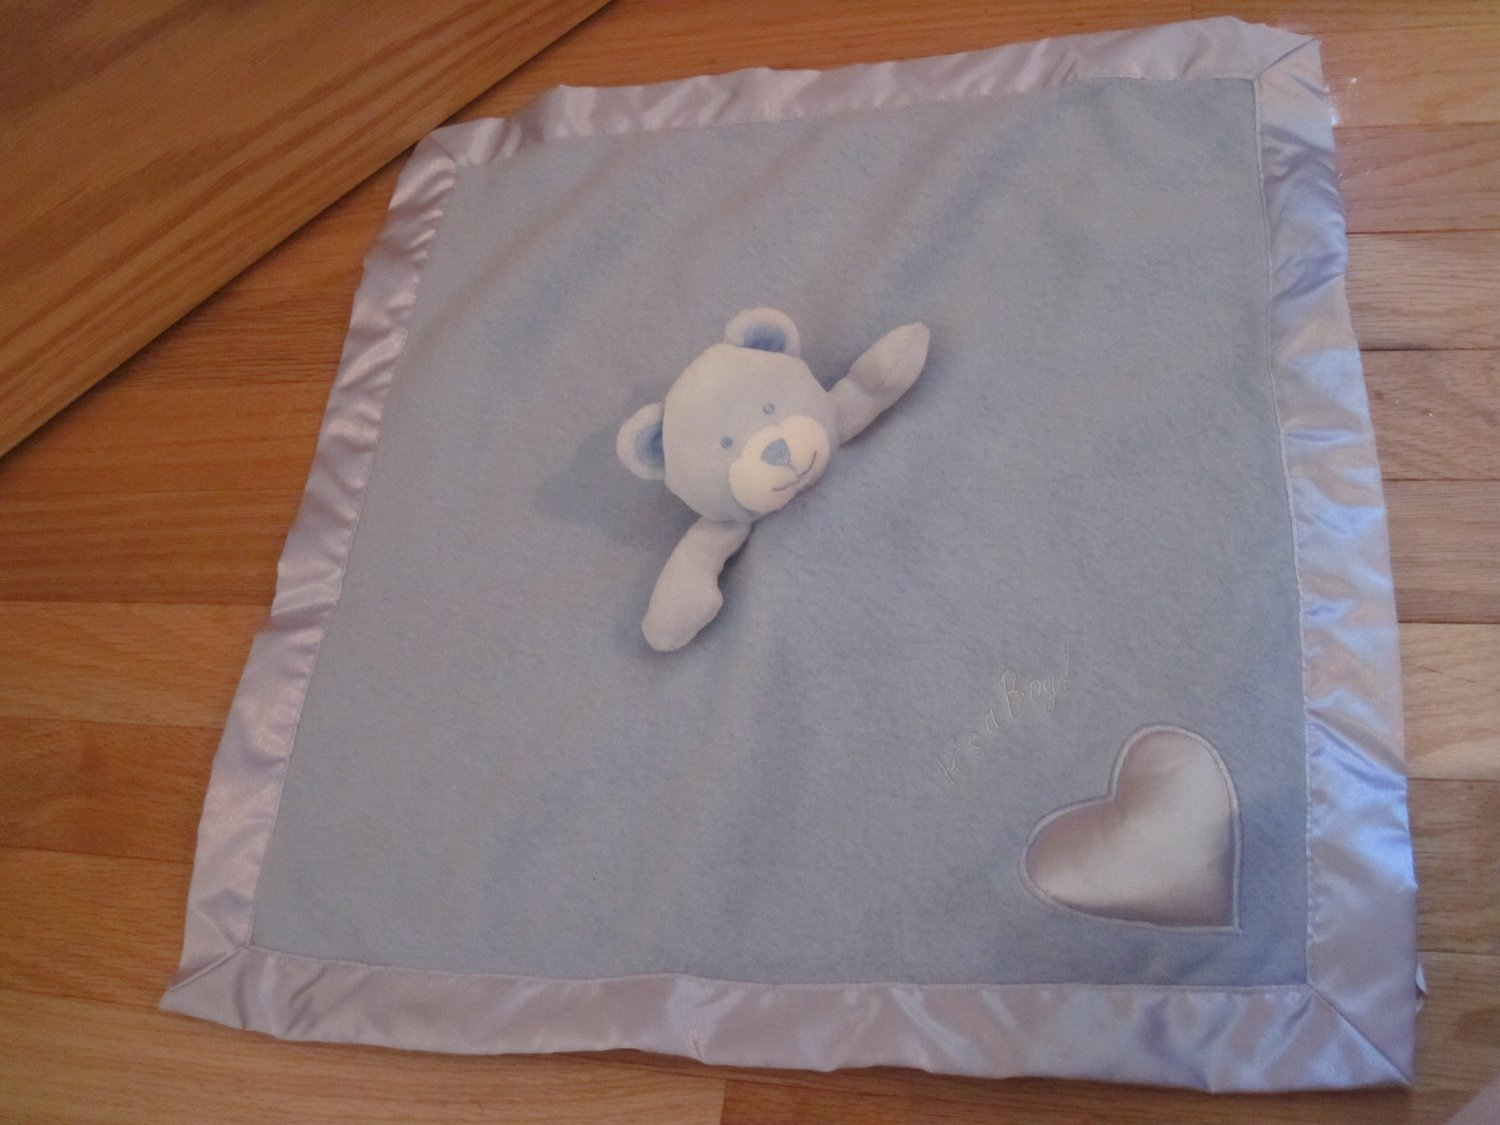 Baby Boom It's A Boy Blue Fleece Satin Teddy Bear Security Blanket Lovey Heart Musical